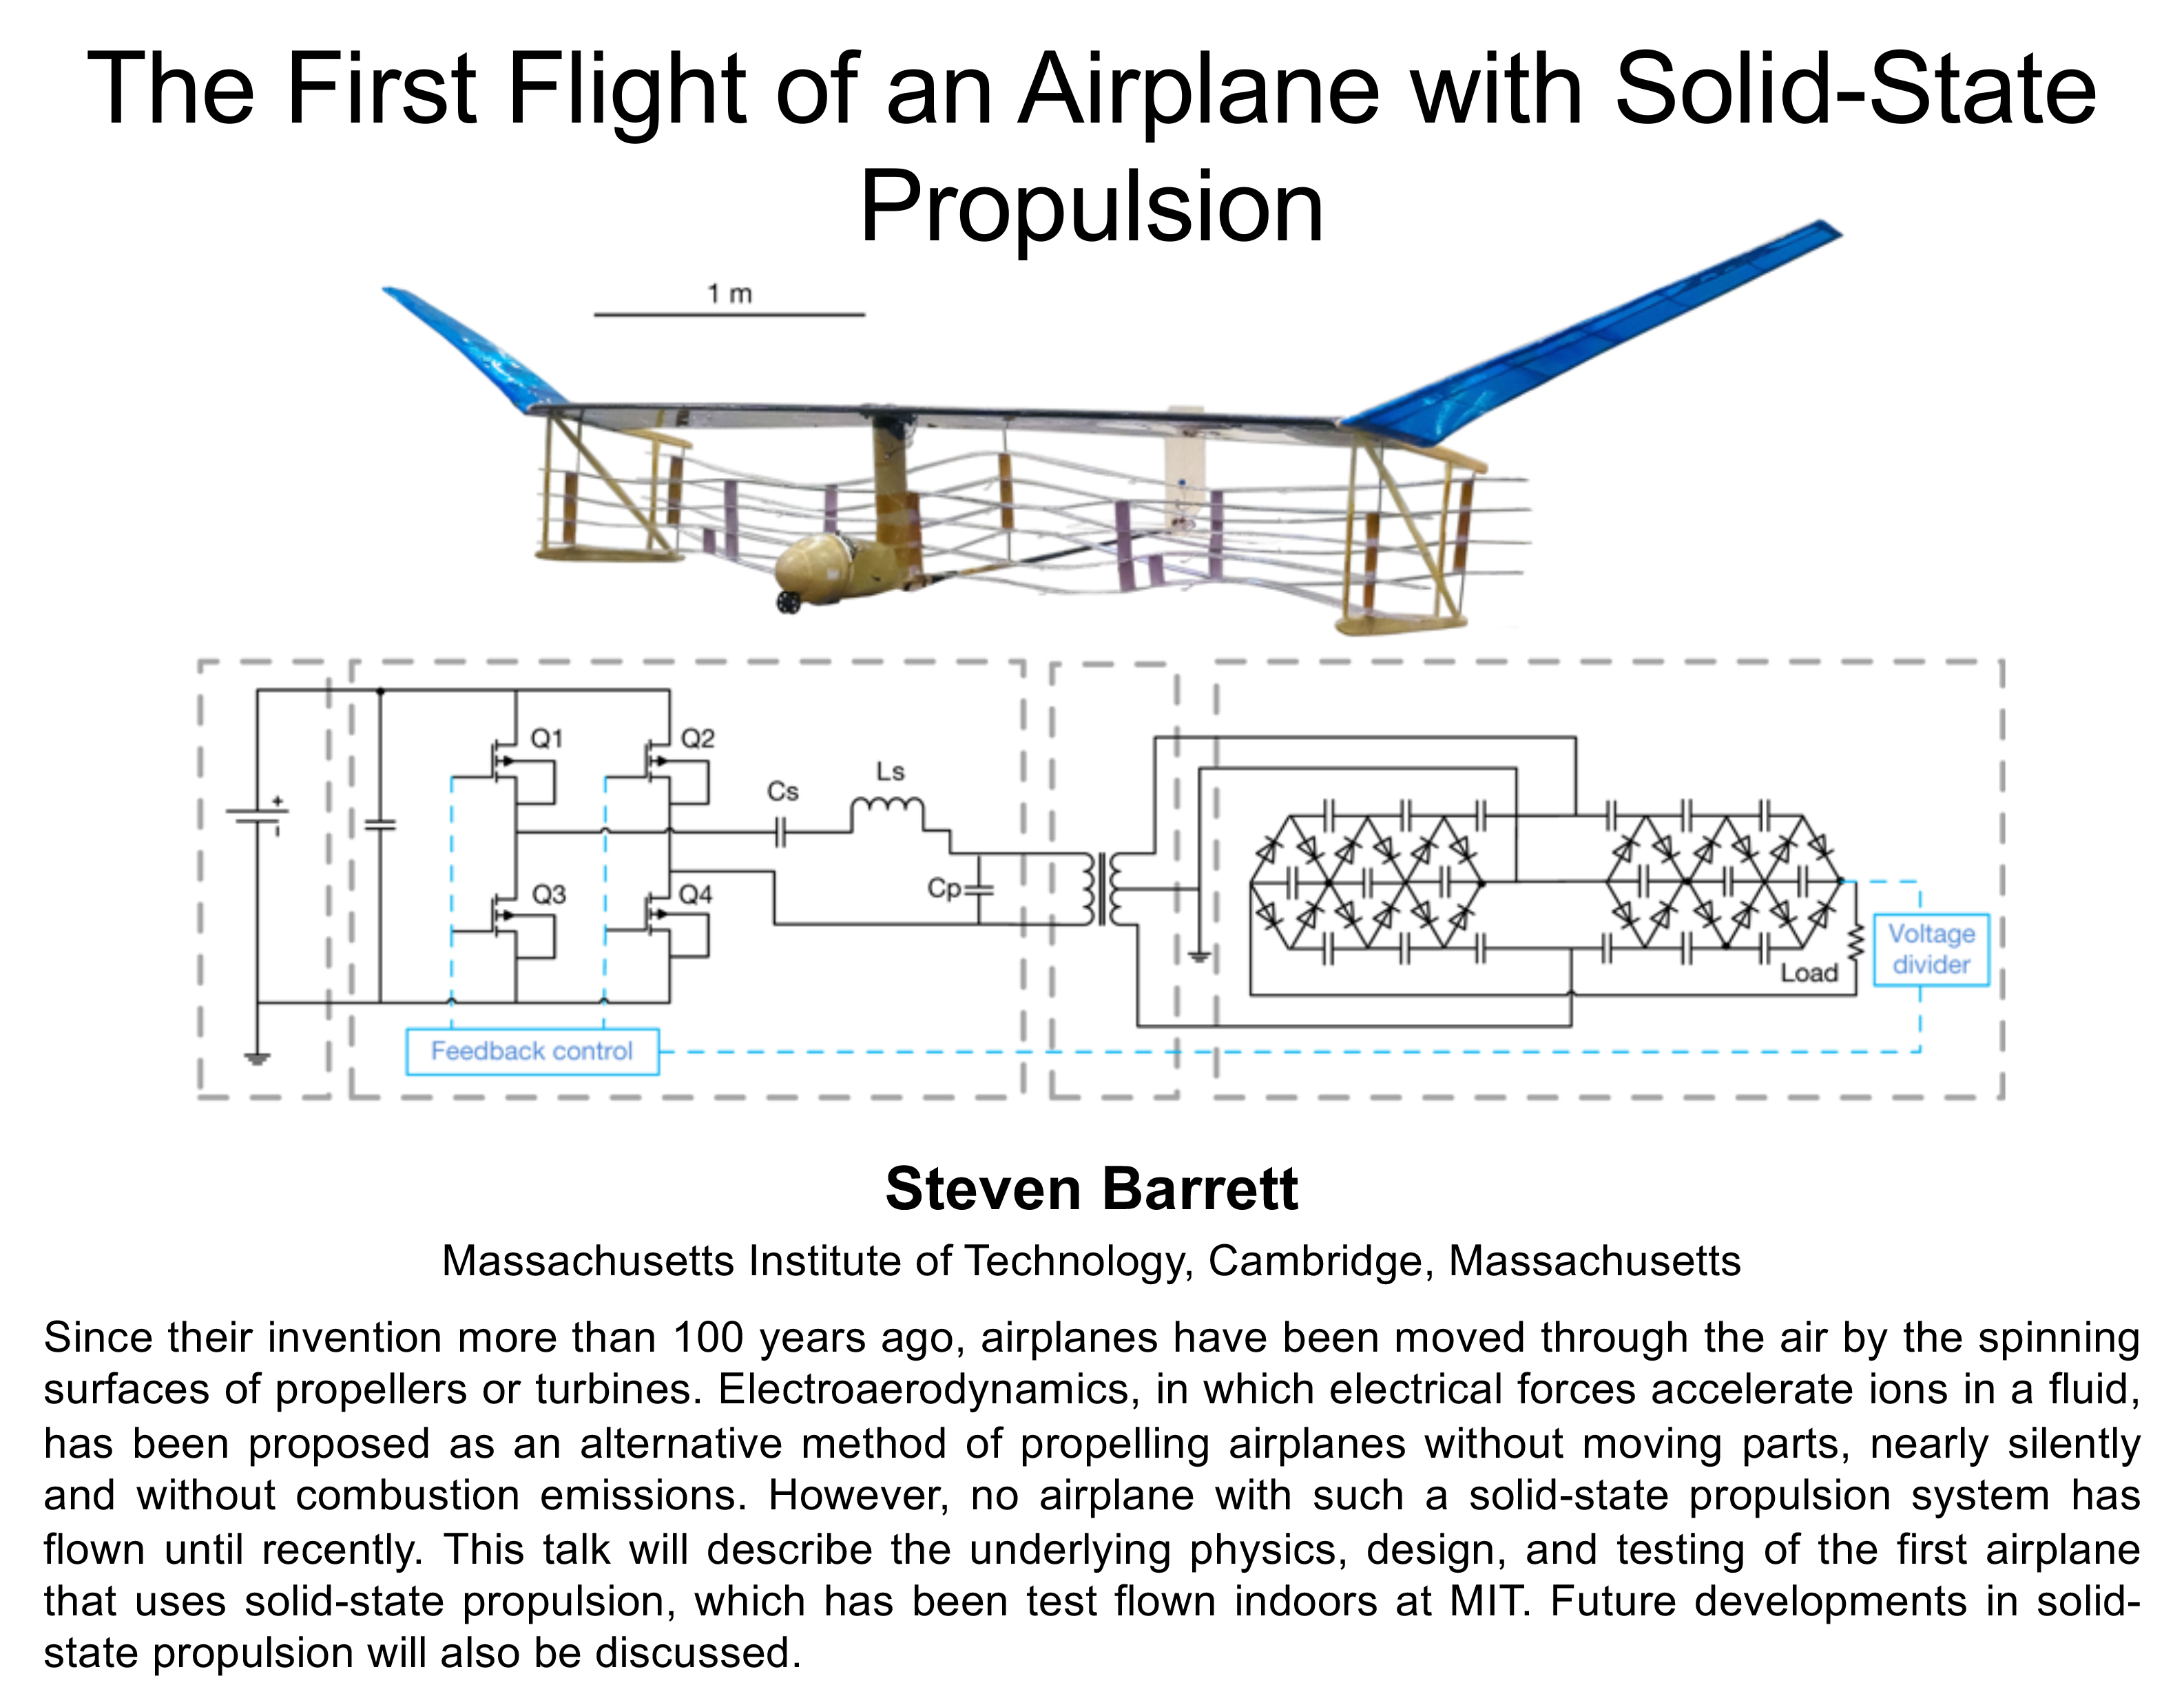 Plenary: The First Flight of an Airplane with Solid-State Propulsion